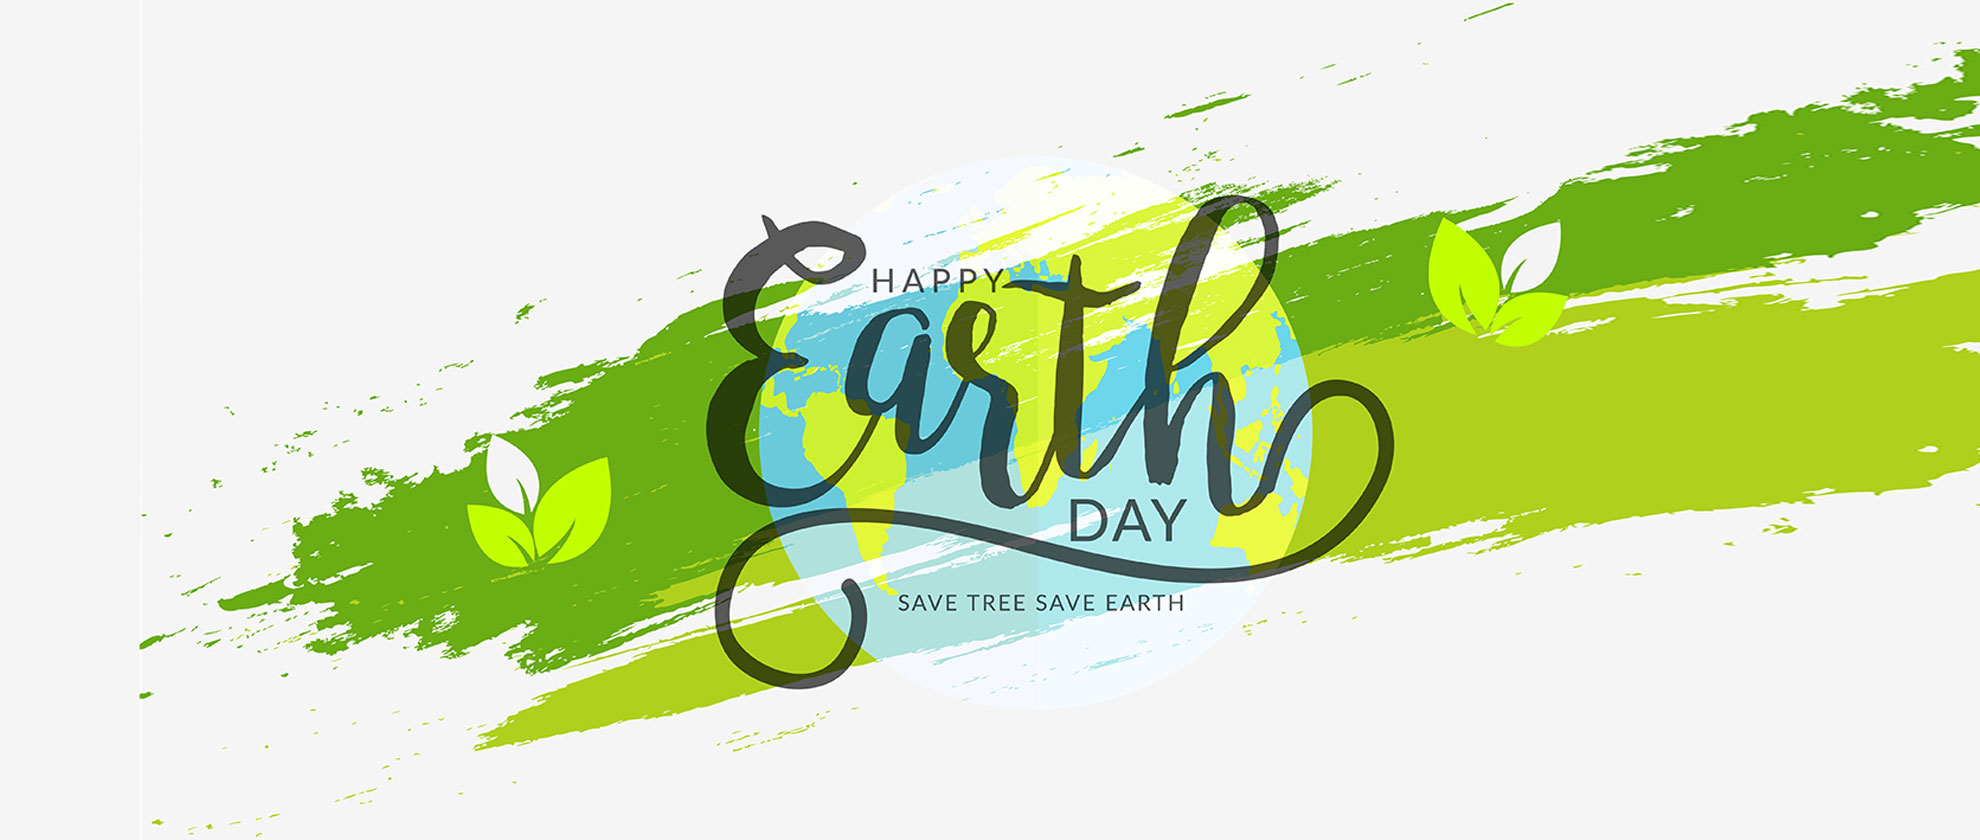 EARTH DAY: 22 APRIL, 2019